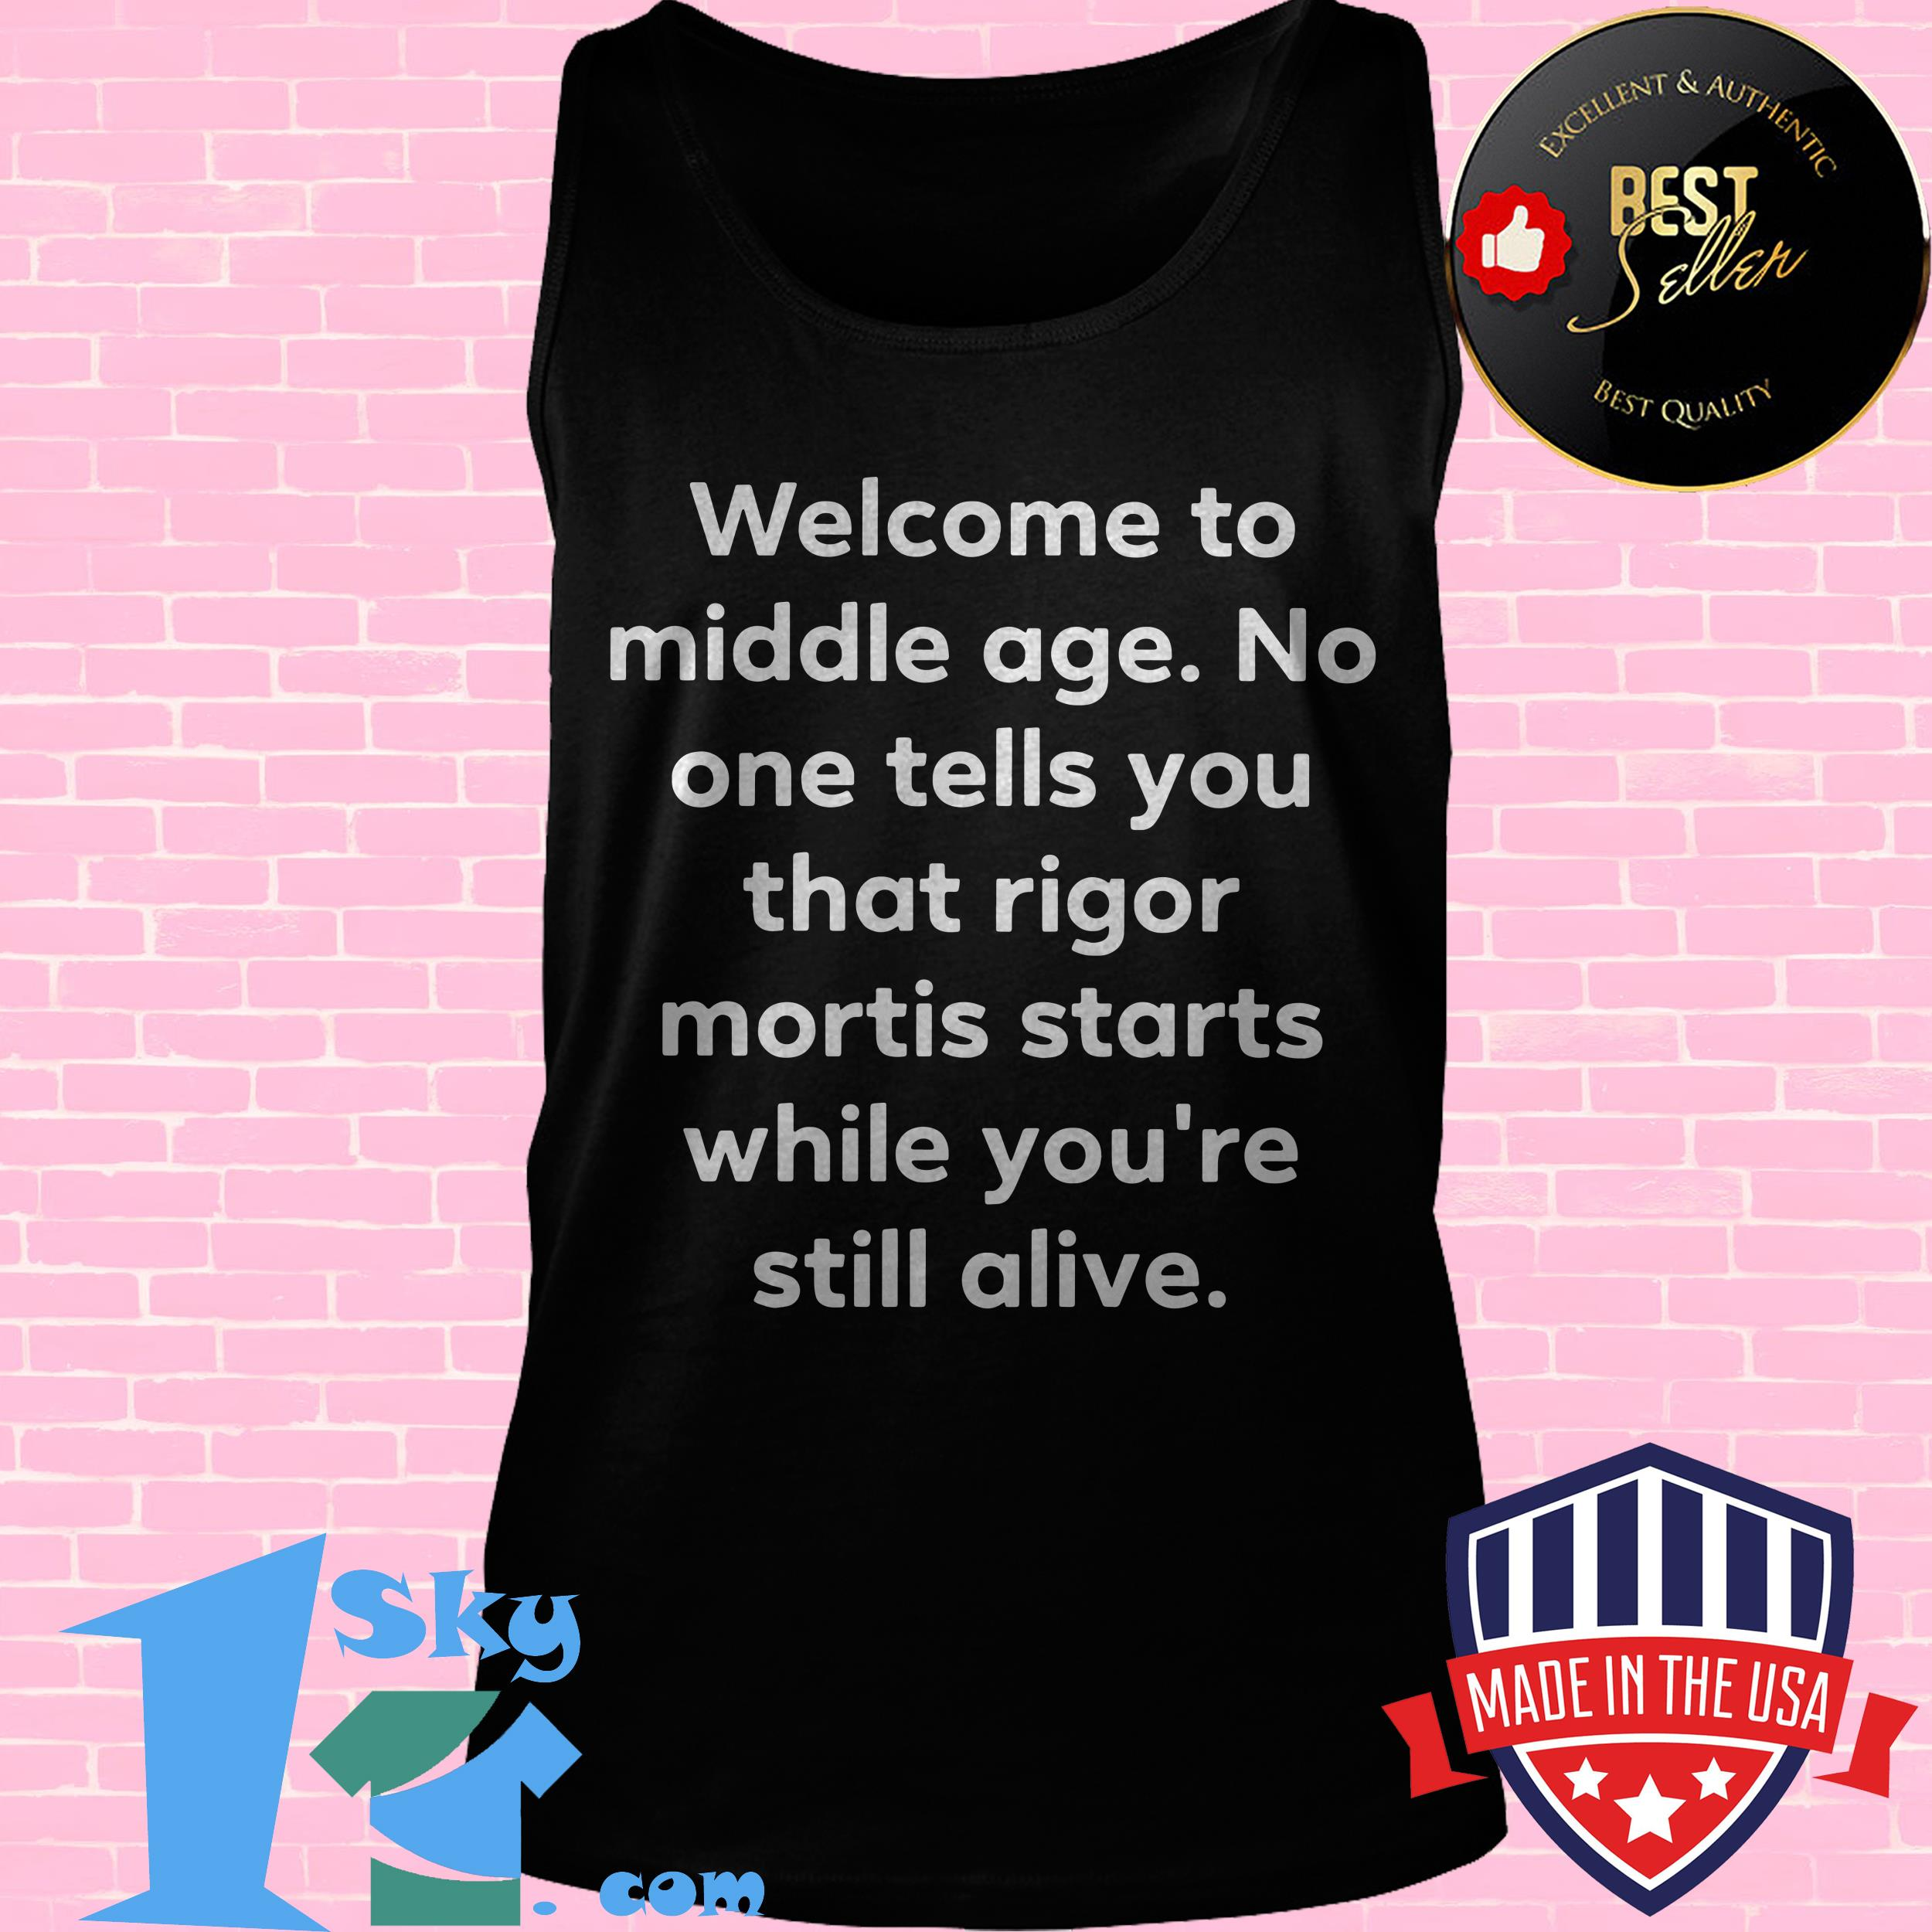 welcome to middle age no one tells you that rigor mortis starts while youre still alive tank top - Welcome to Middle Age No One Tells You That Rigor Mortis Starts While You're Still Alive shirt